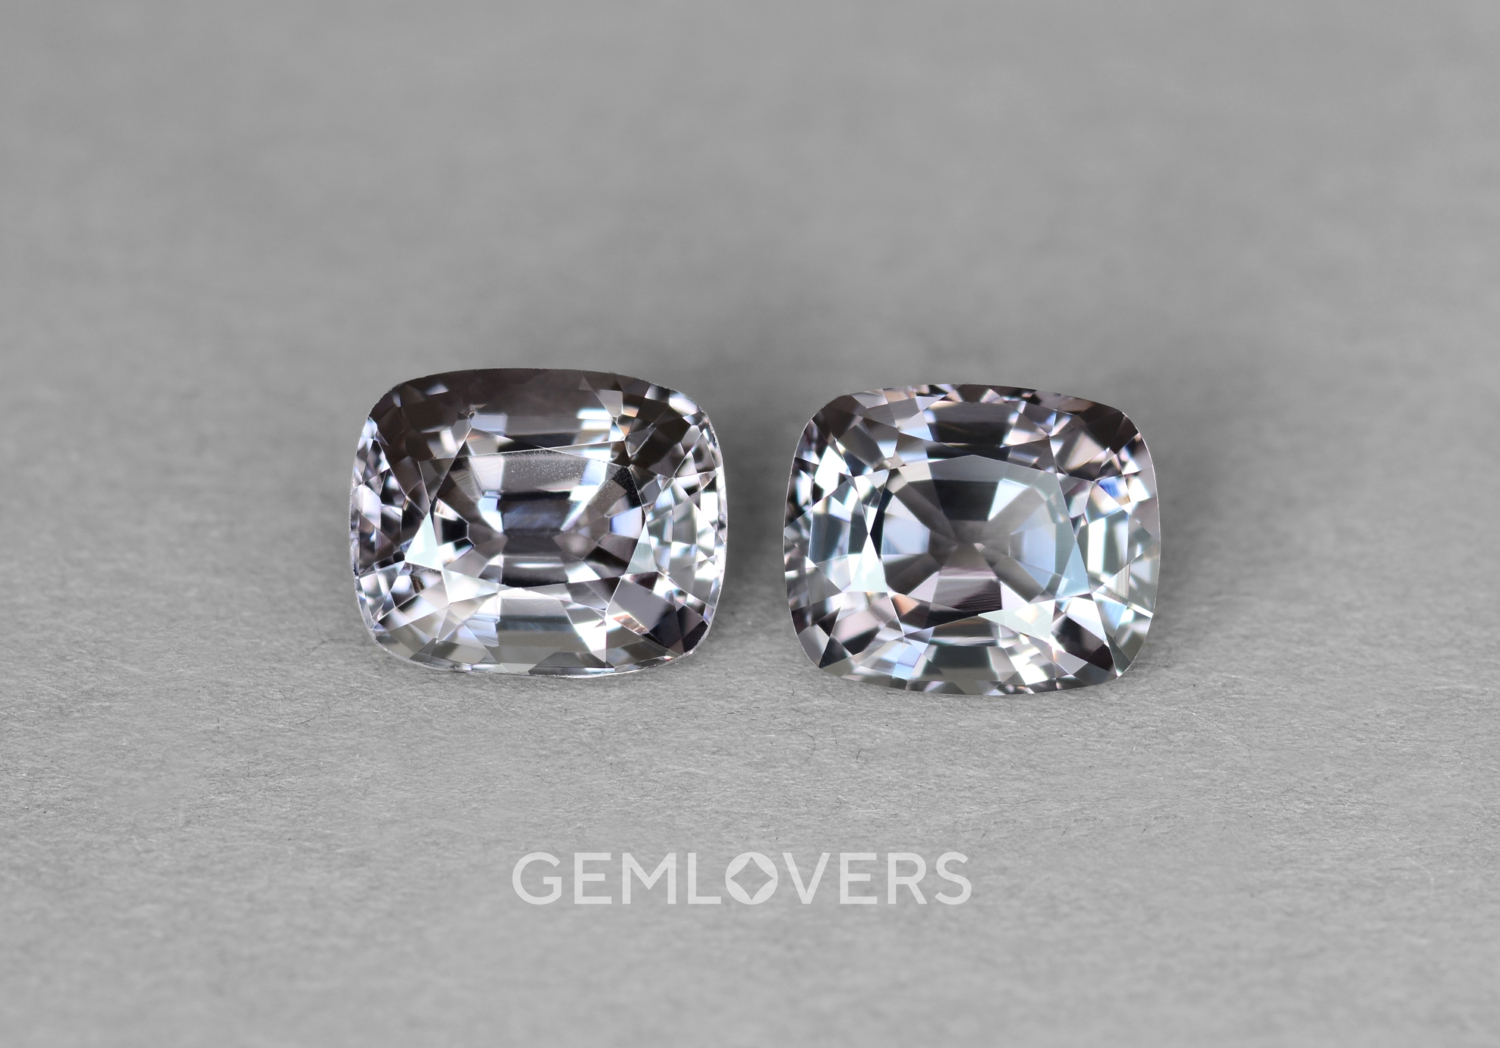 A pair of gray spinels from Burma